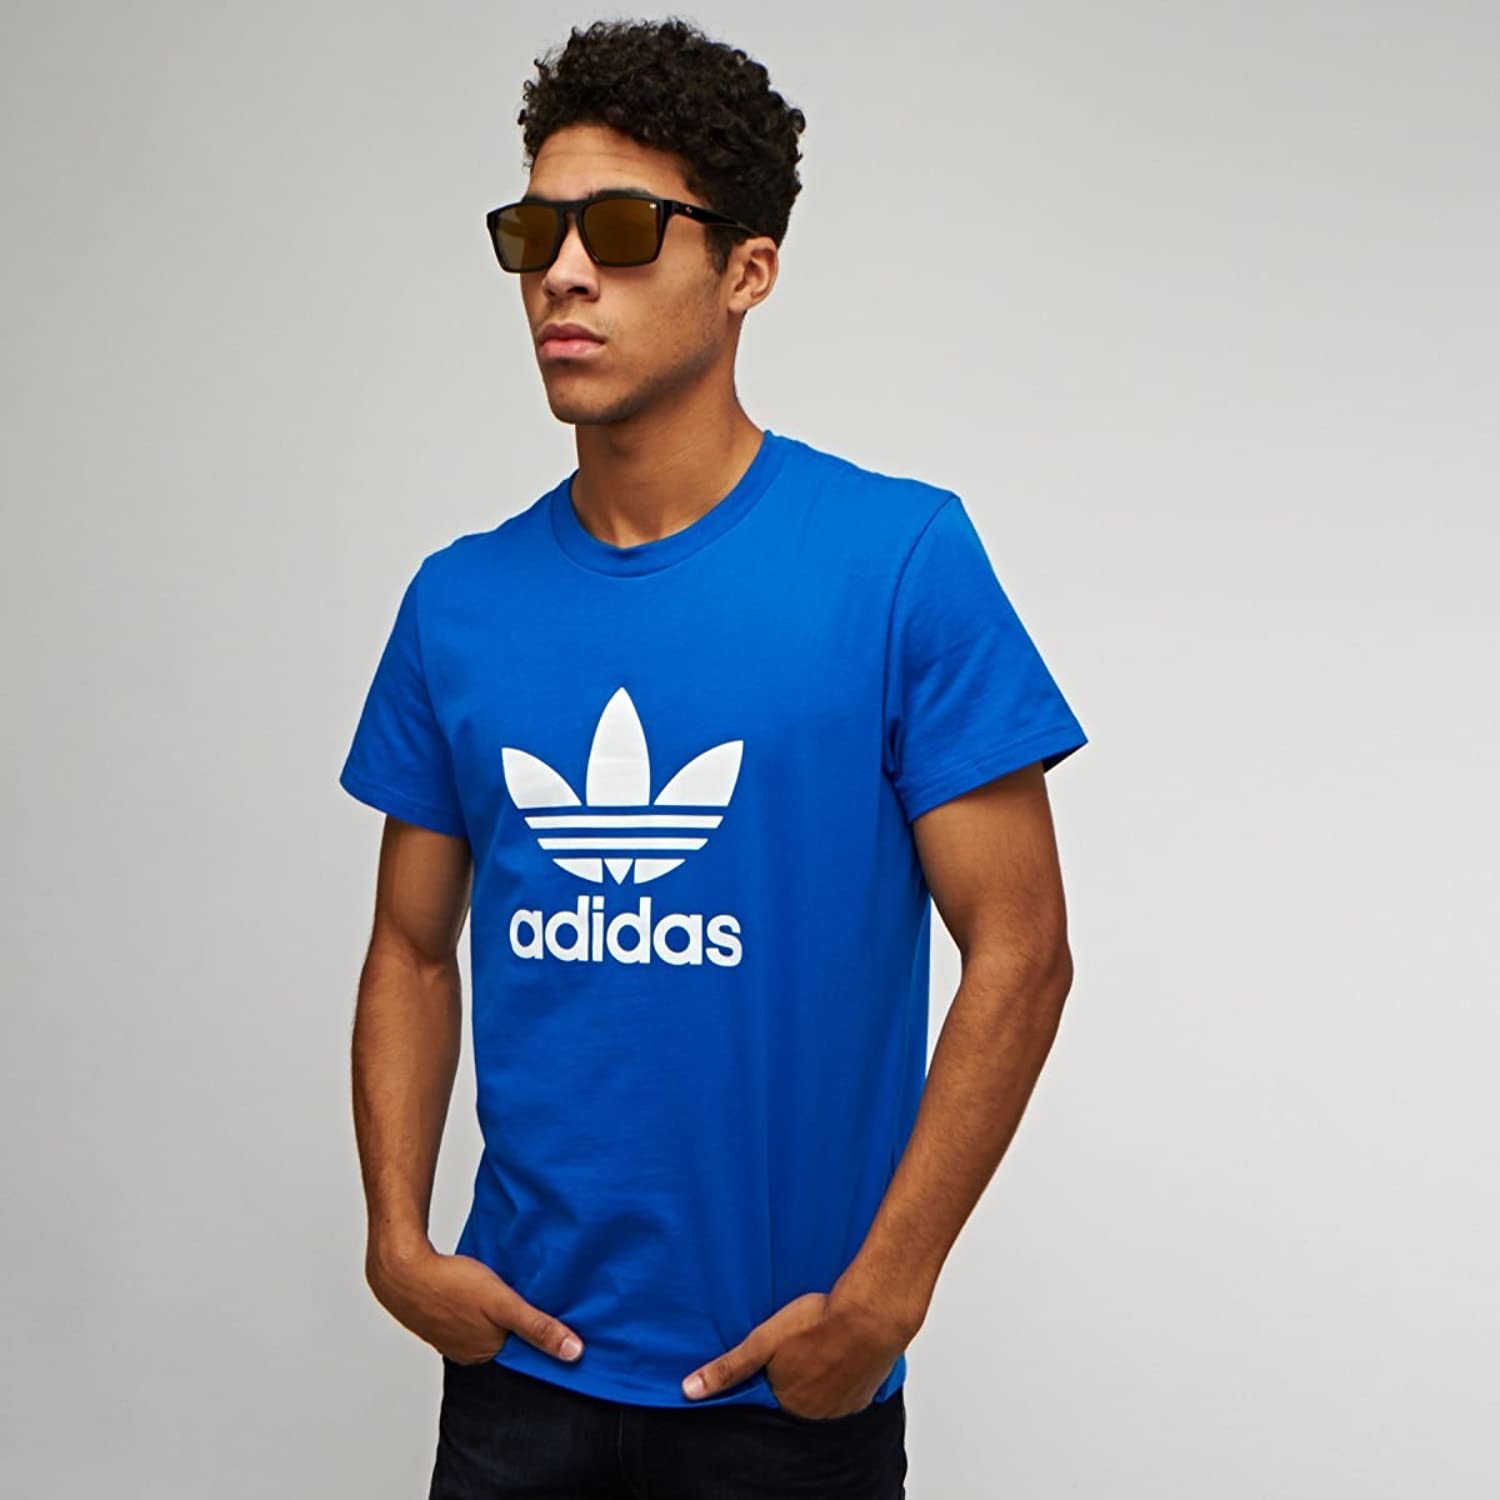 adidas sunglasses mens blue